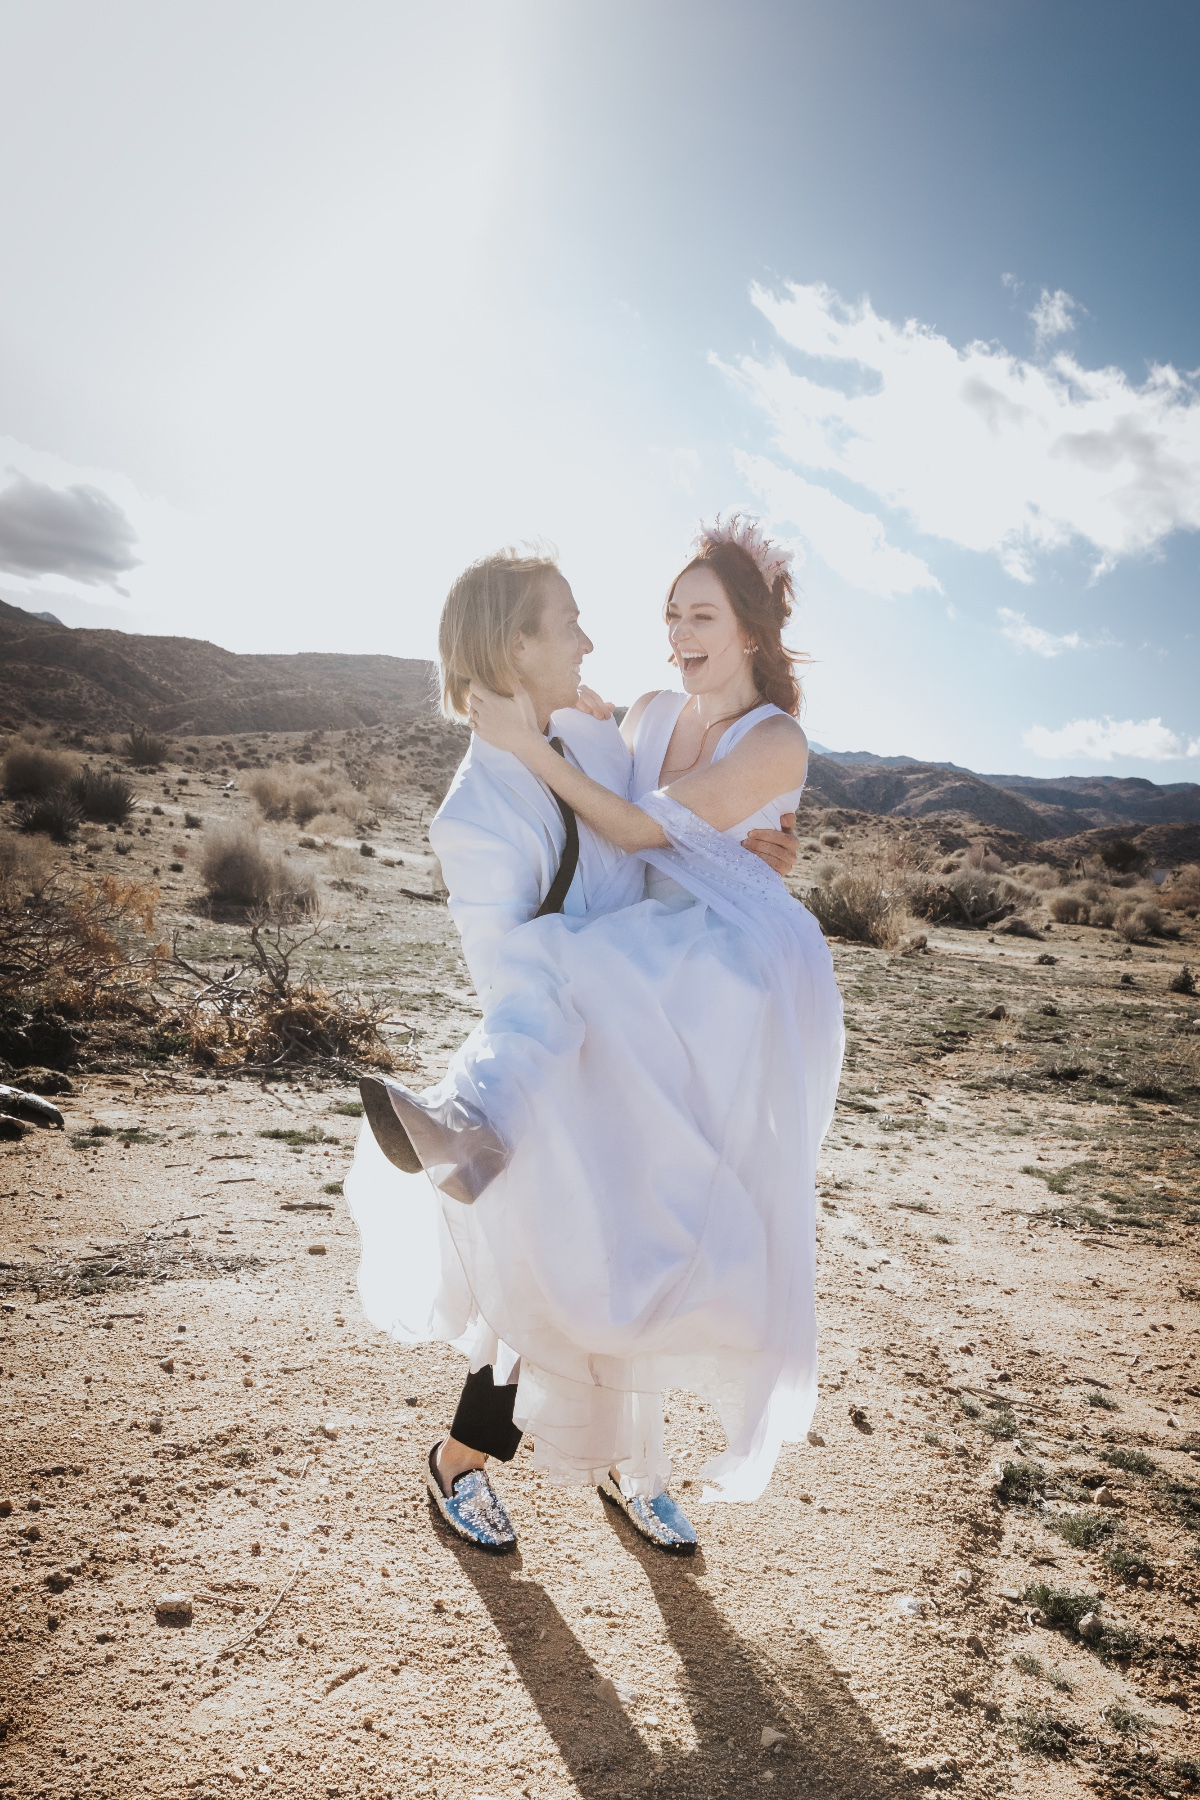 fun wedding style at Joshua Tree